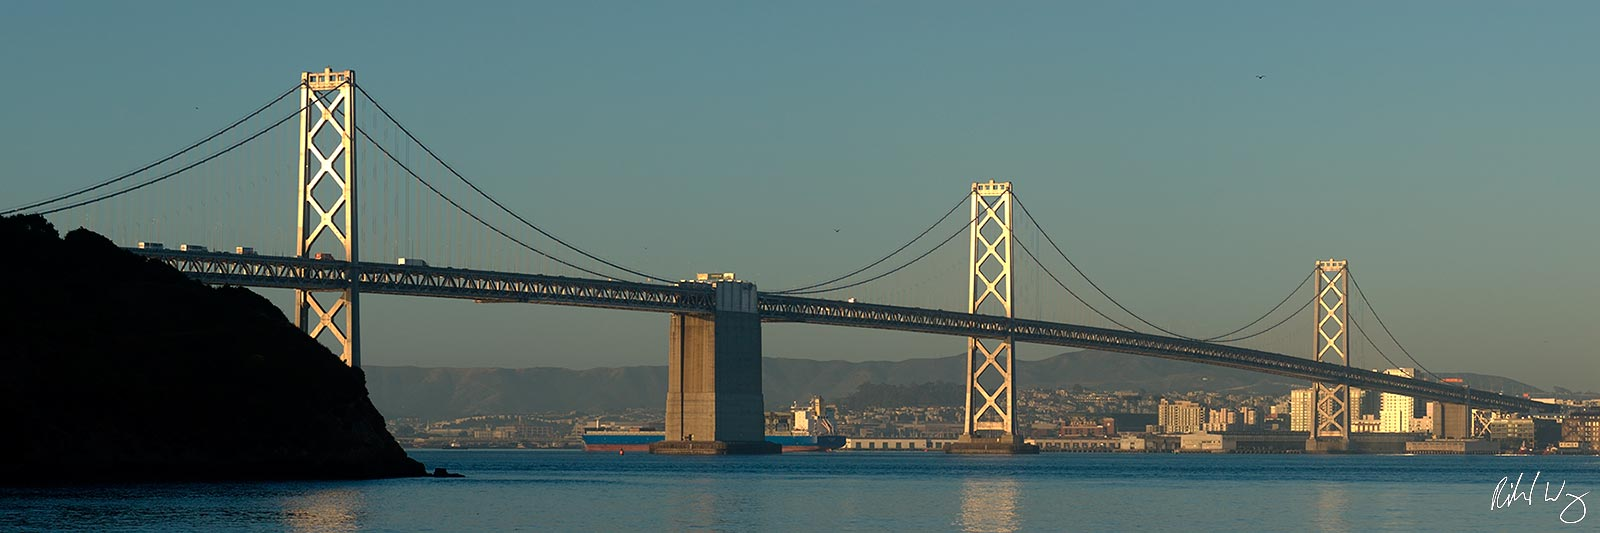 San Francisco-Oakland Bay Bridge Panoramic, Treasure Island, California, Photo, photo